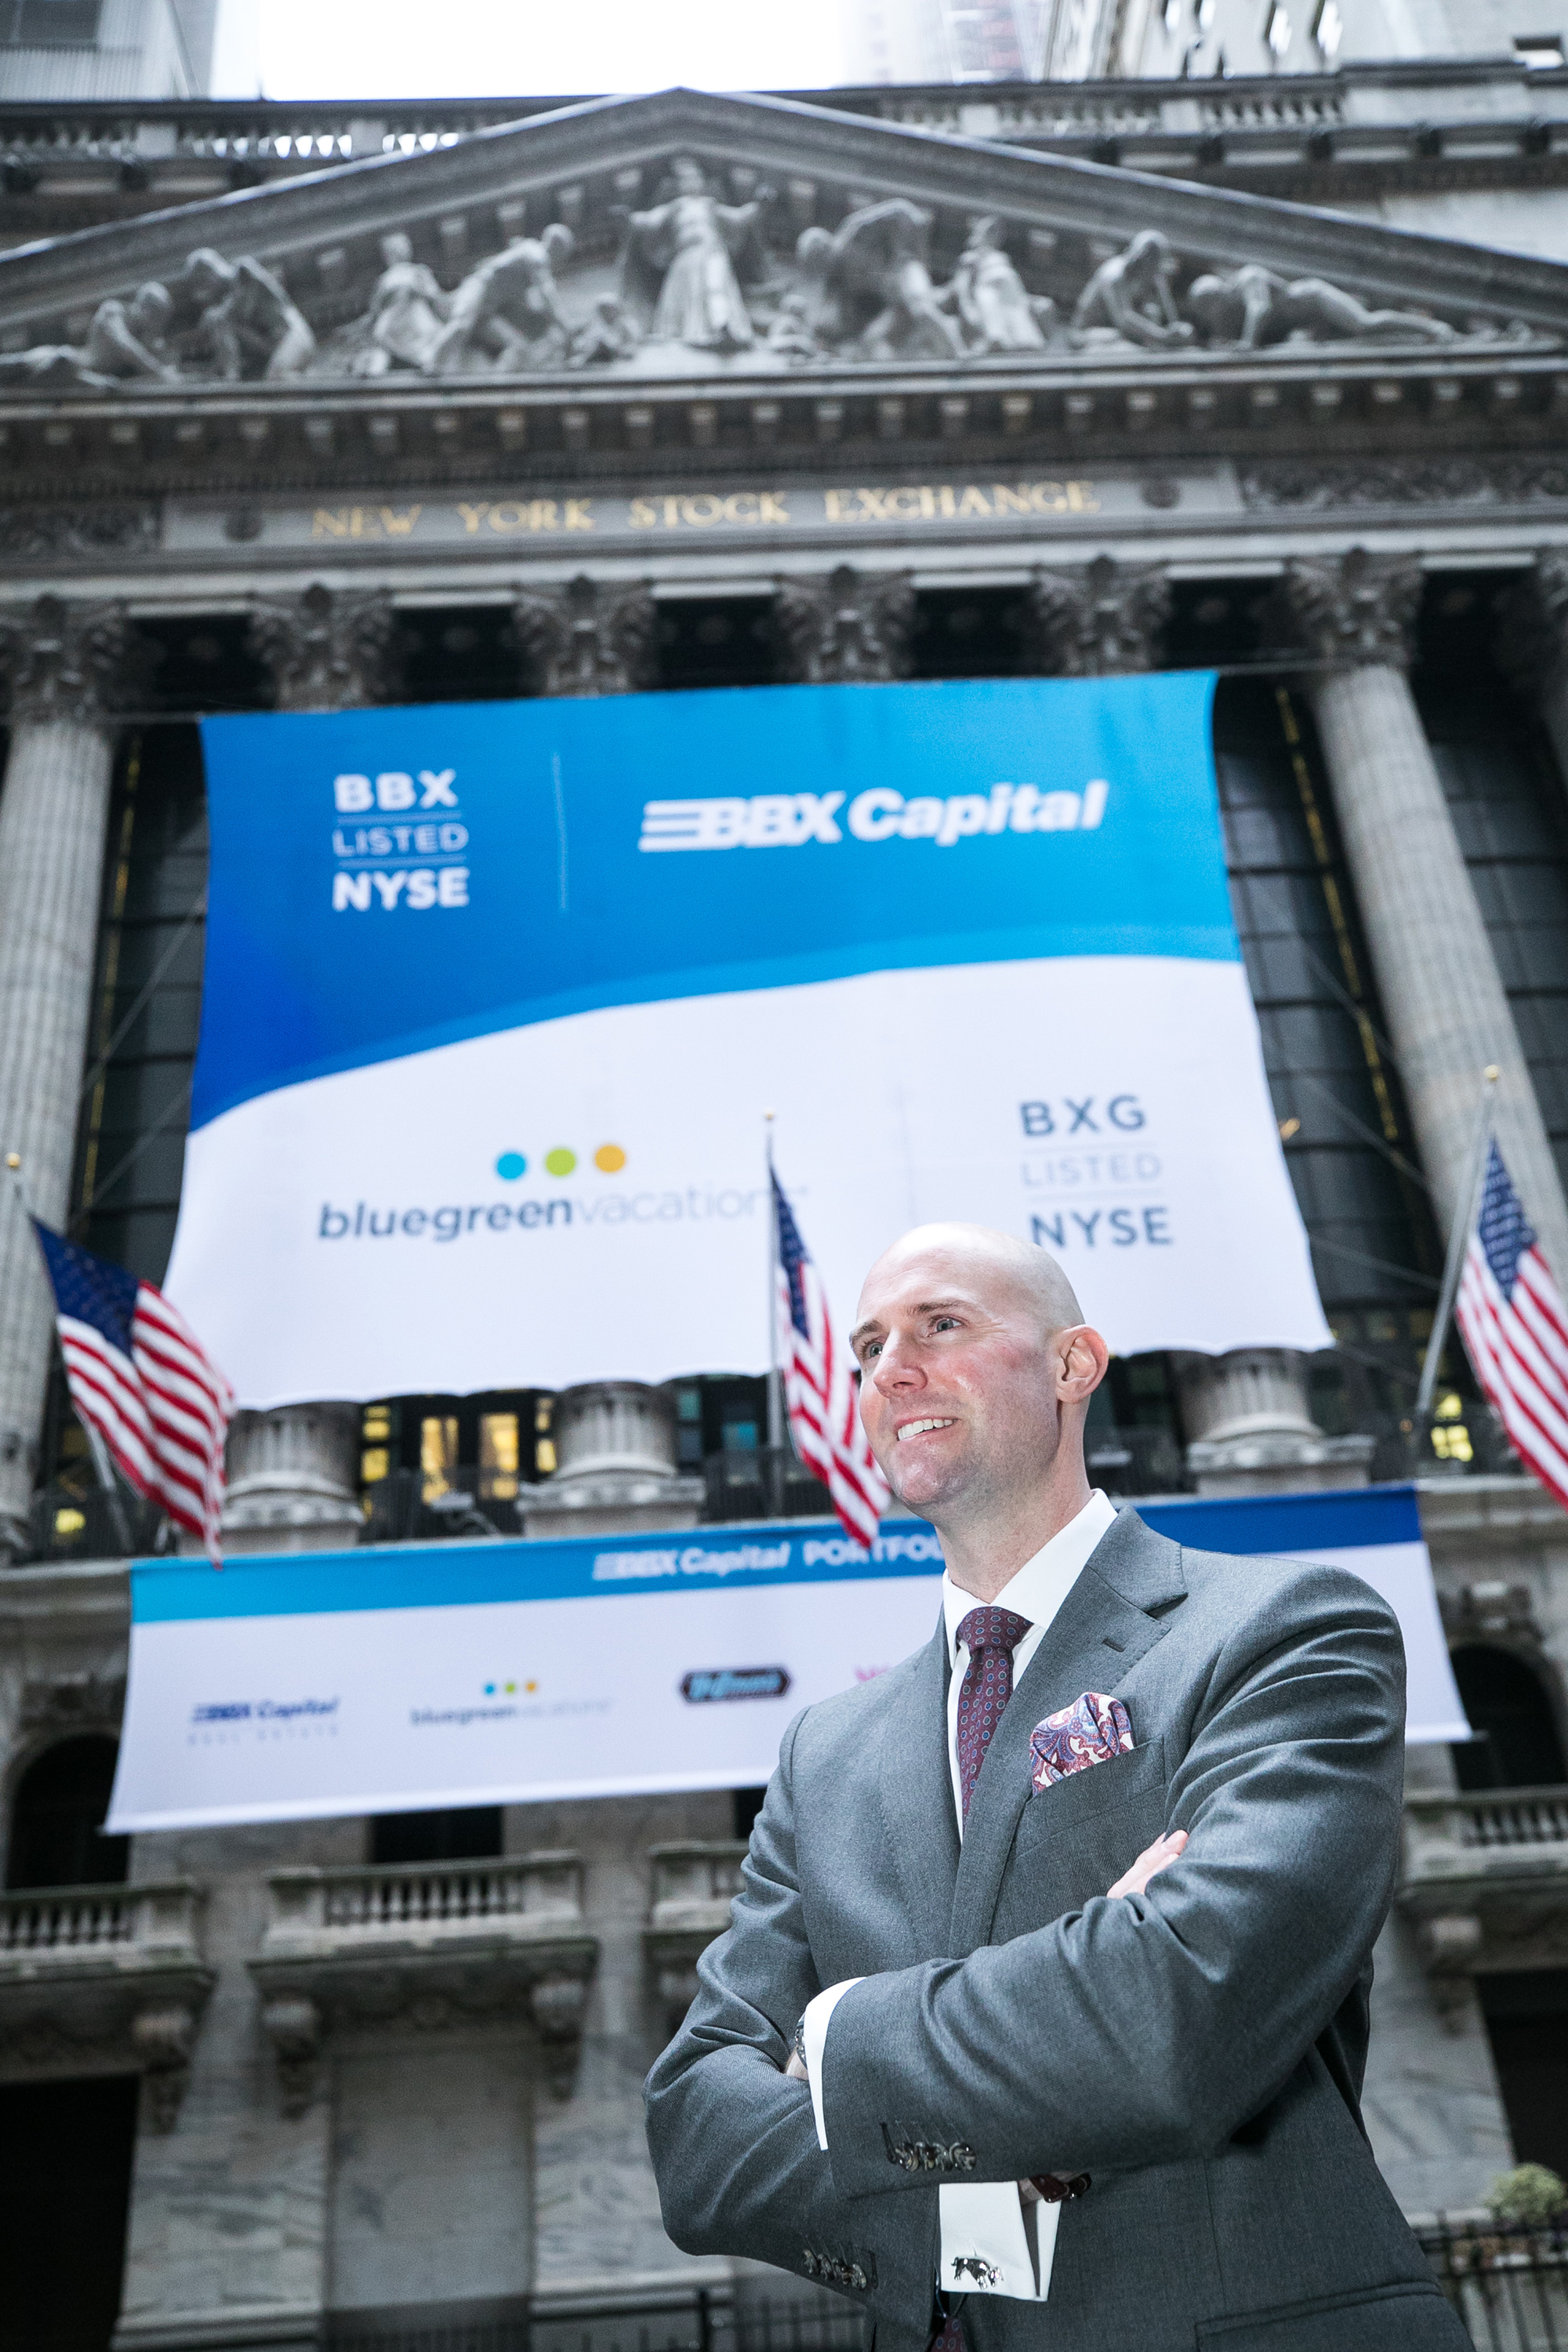 Pearson at the New York Stock Exchange in front of a banner for Bluegreen and parent BBX Capital